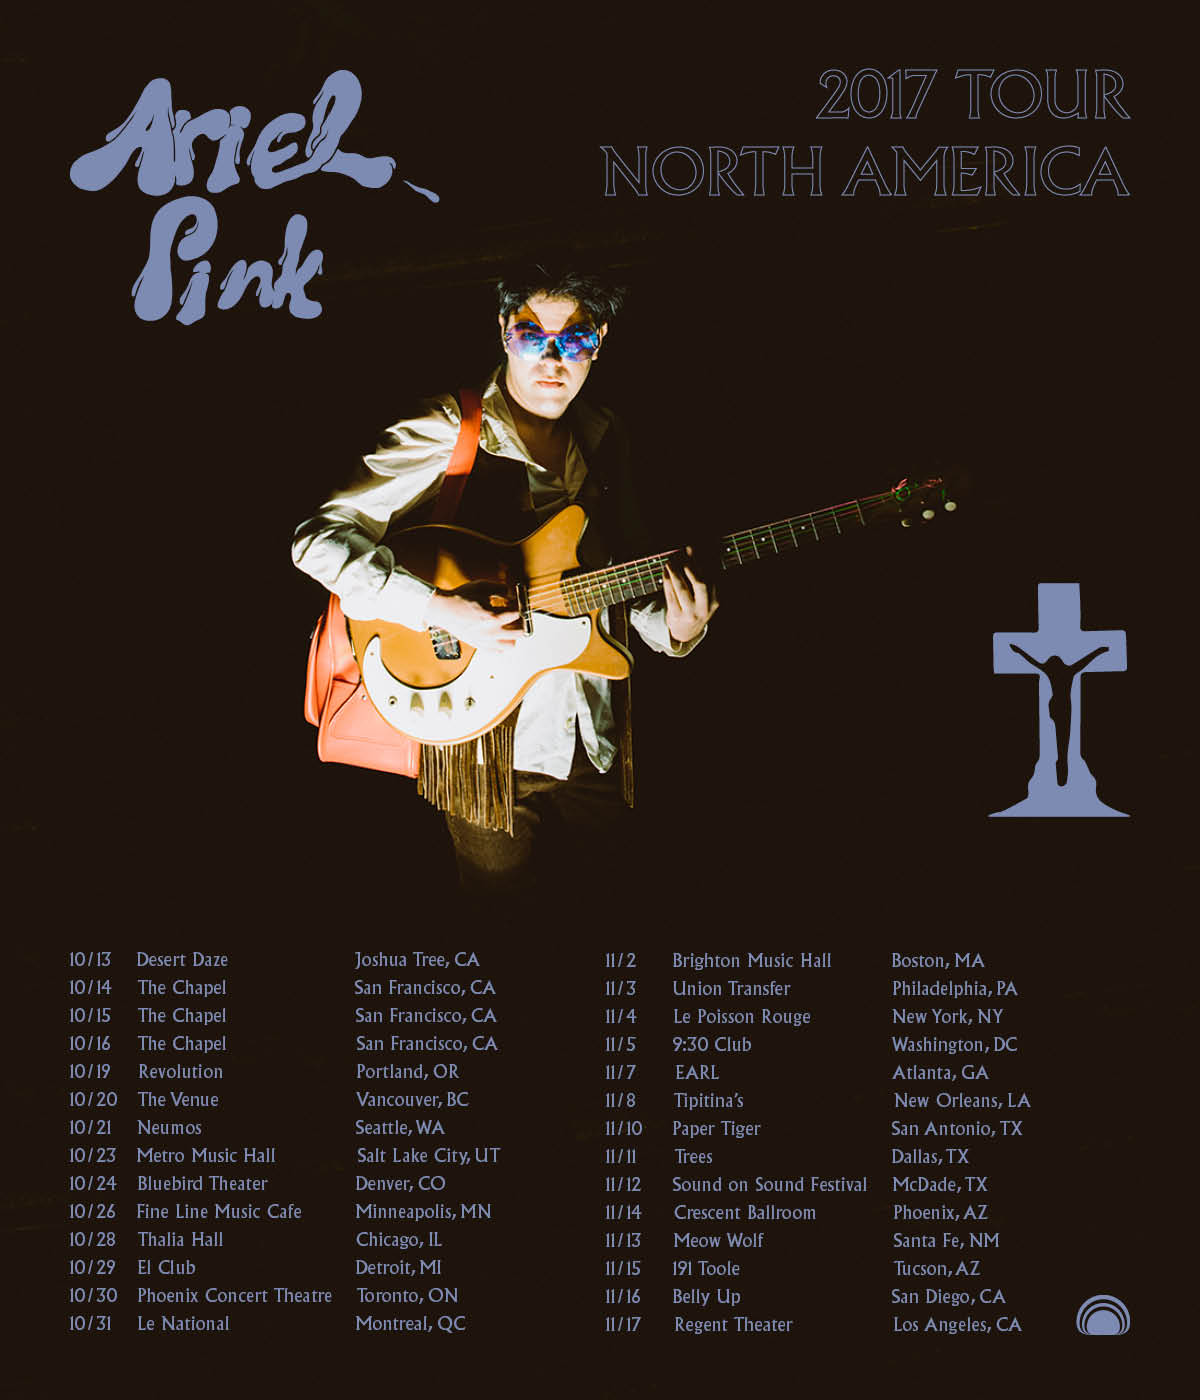 Ariel Pink - 2017 North American Tour Dates